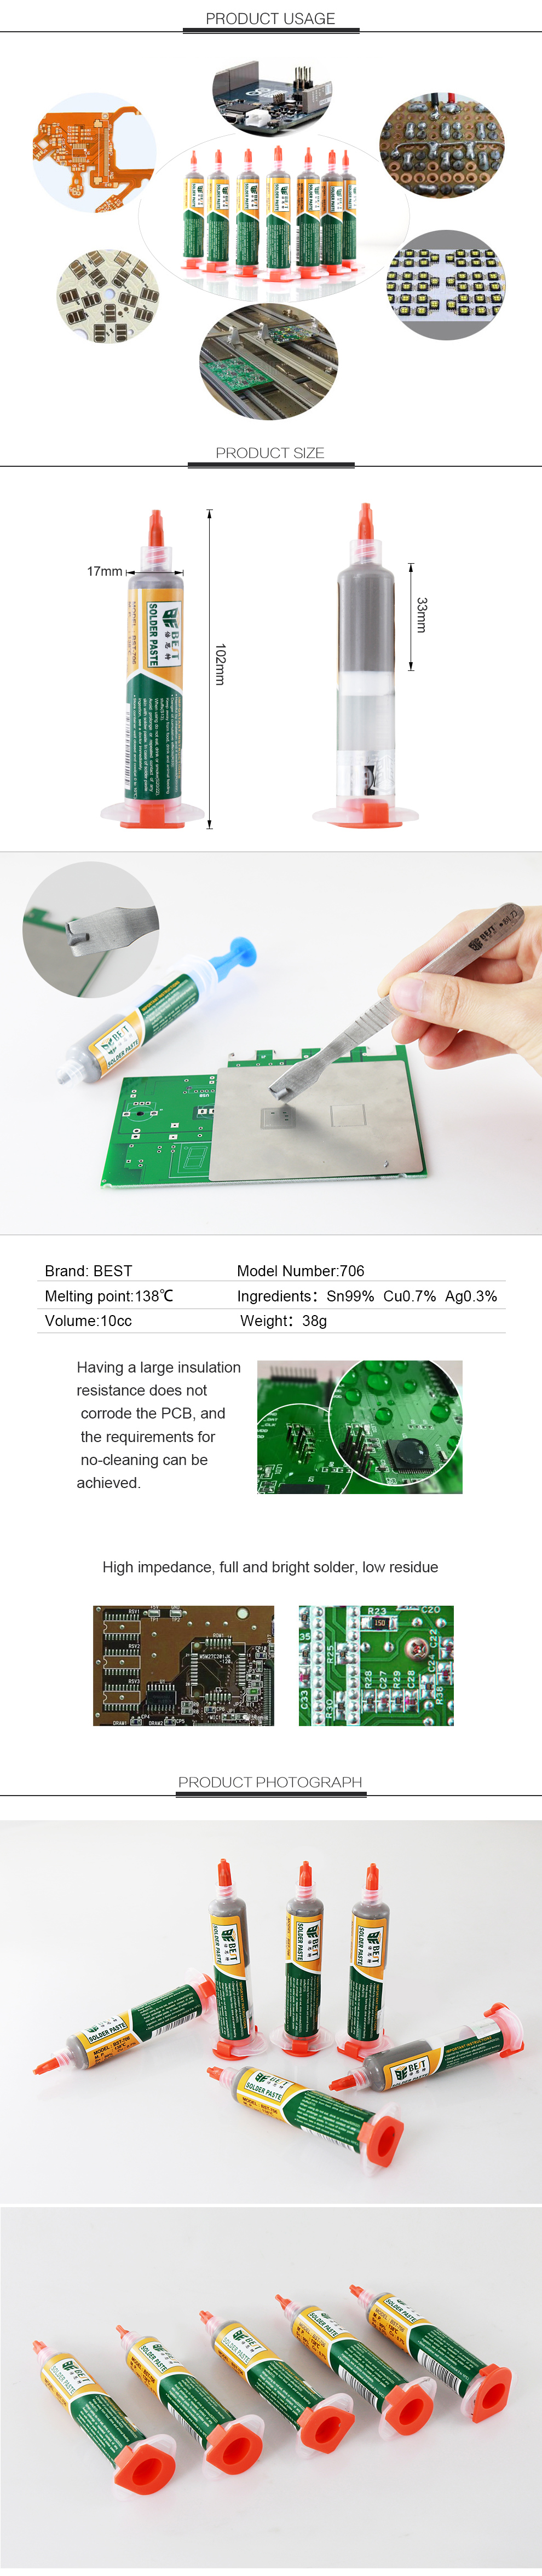 BEST 706 Factory Direct Sales Excellent Quality Cheap Price Tin Lead-free Soldering Paste